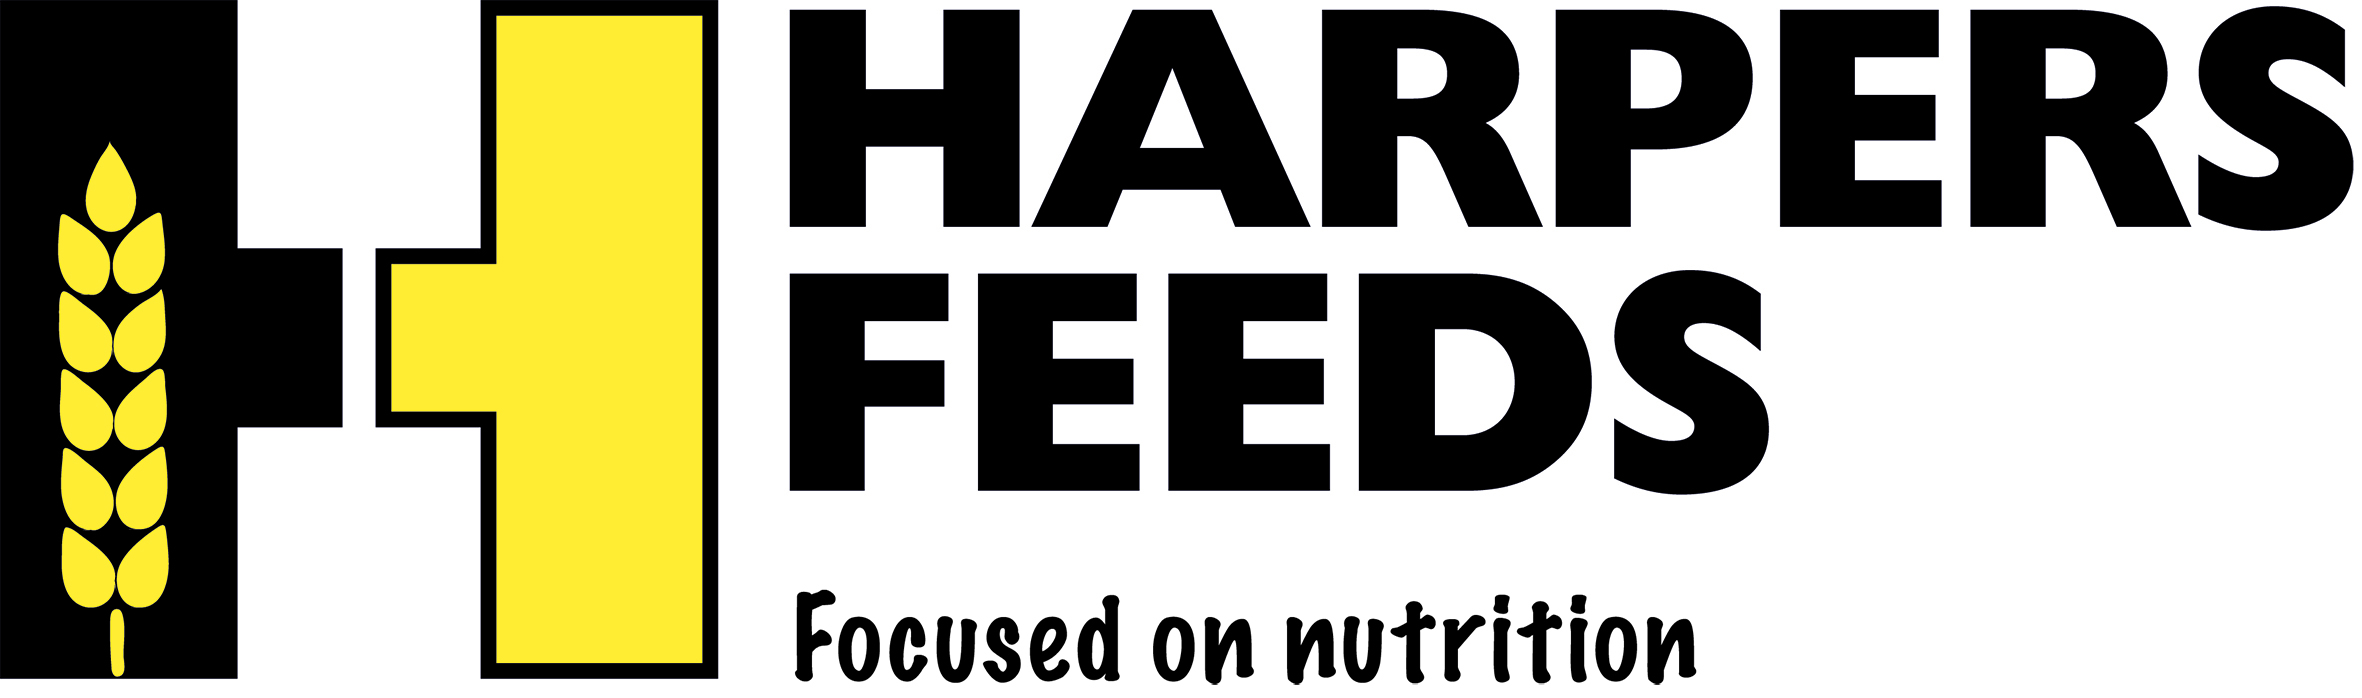 Harpers Feeds  Image